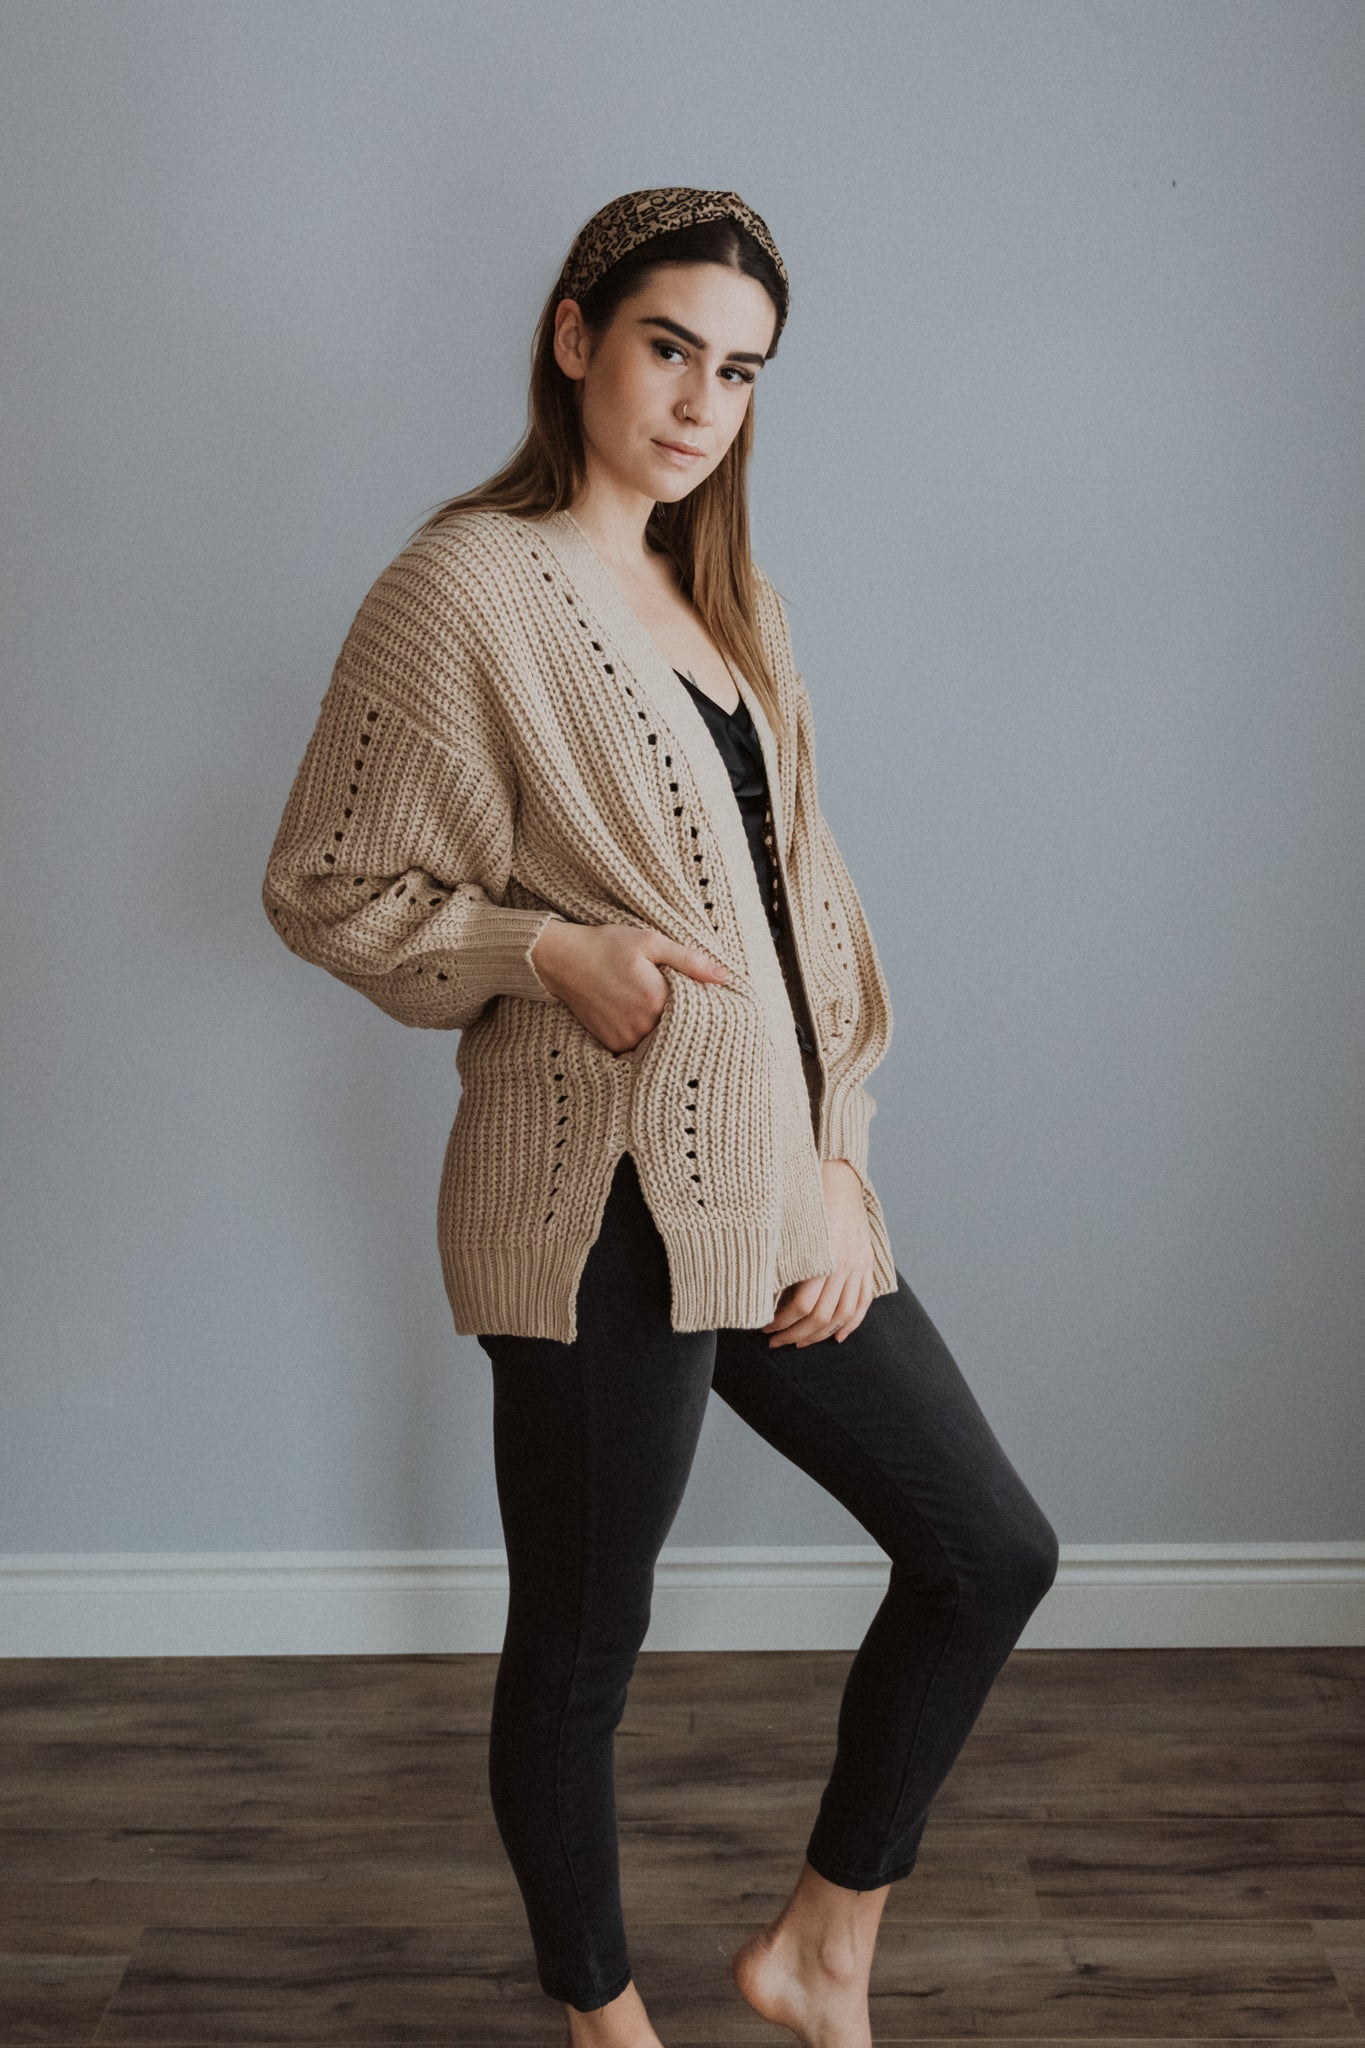 Oh My Cozy Knit Cardigan / FINAL SALE